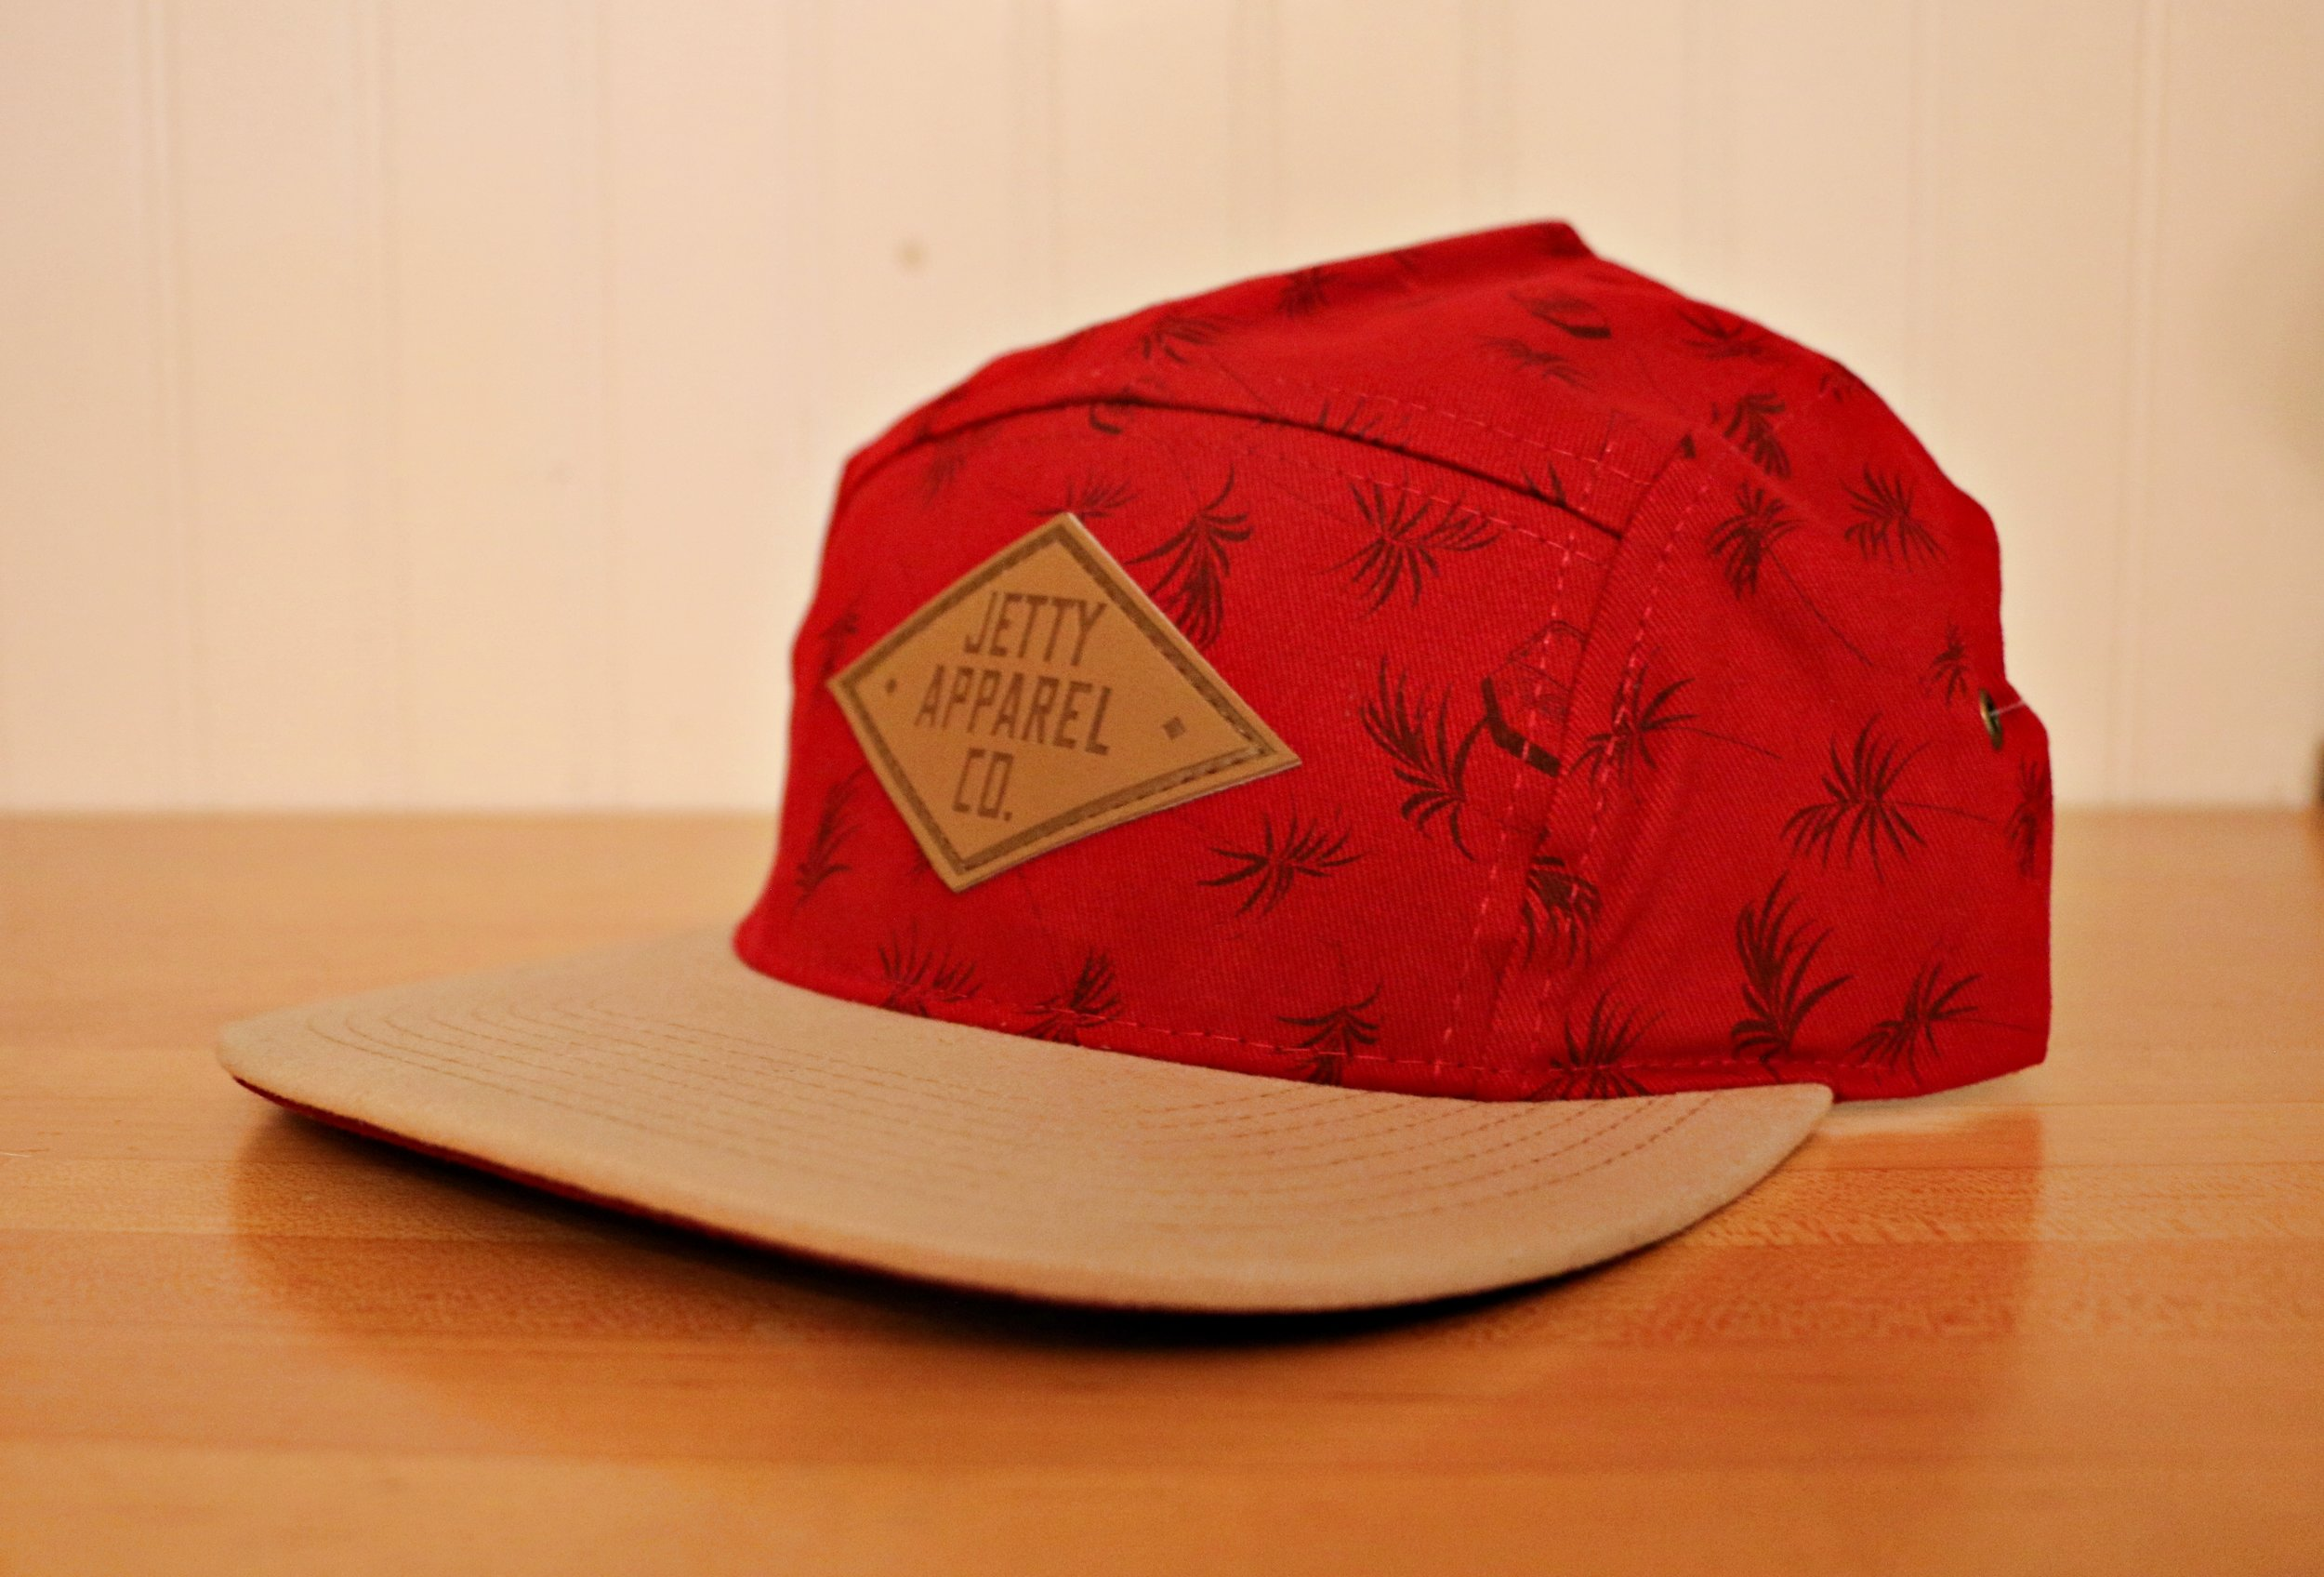 Level 3: Jetty Red Palm Tree Hat